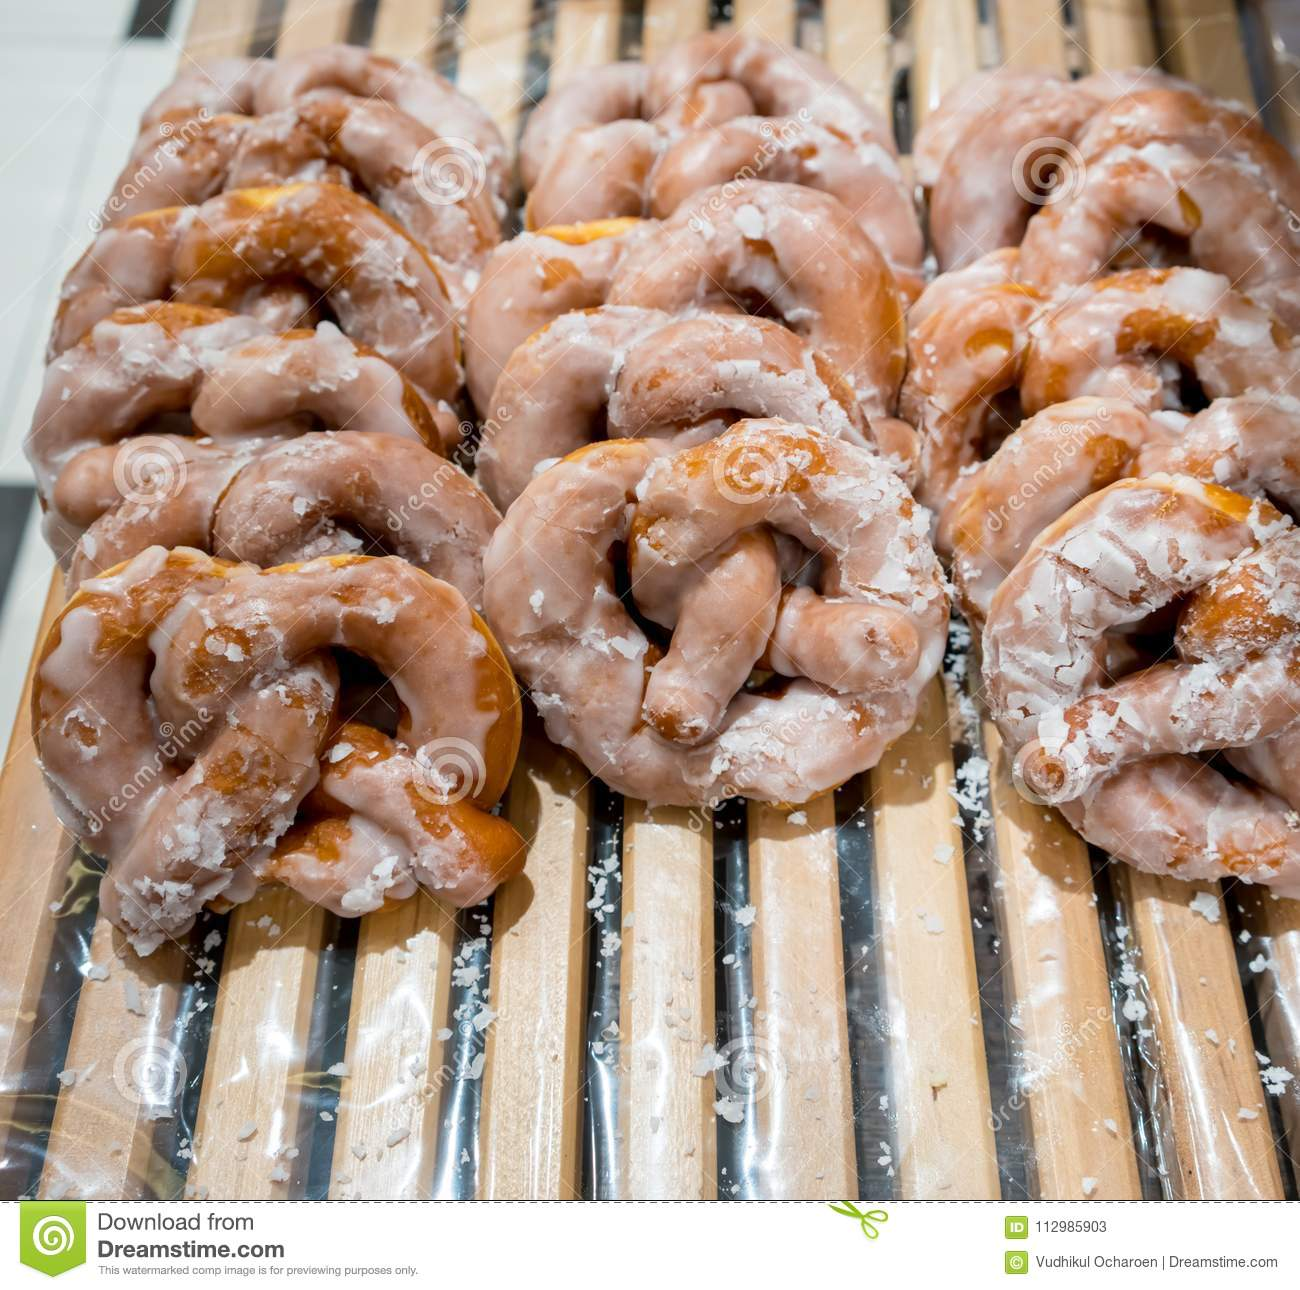 Rows of sugar syrup glazed pretzels on wooden rack in modern shop.